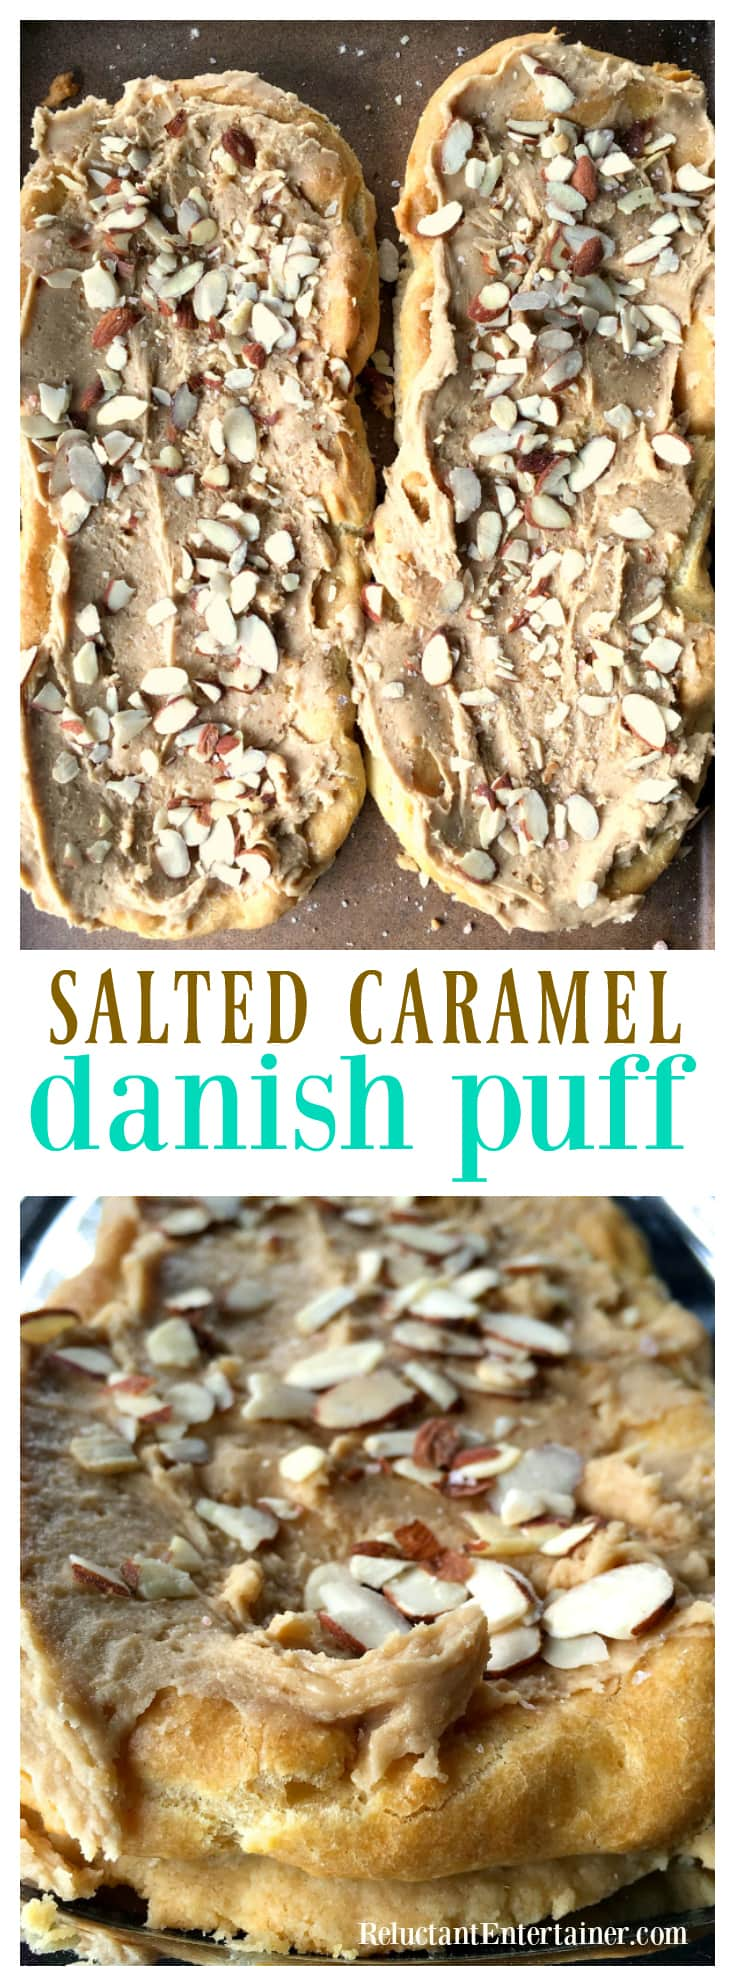 Salted Caramel Danish Puff